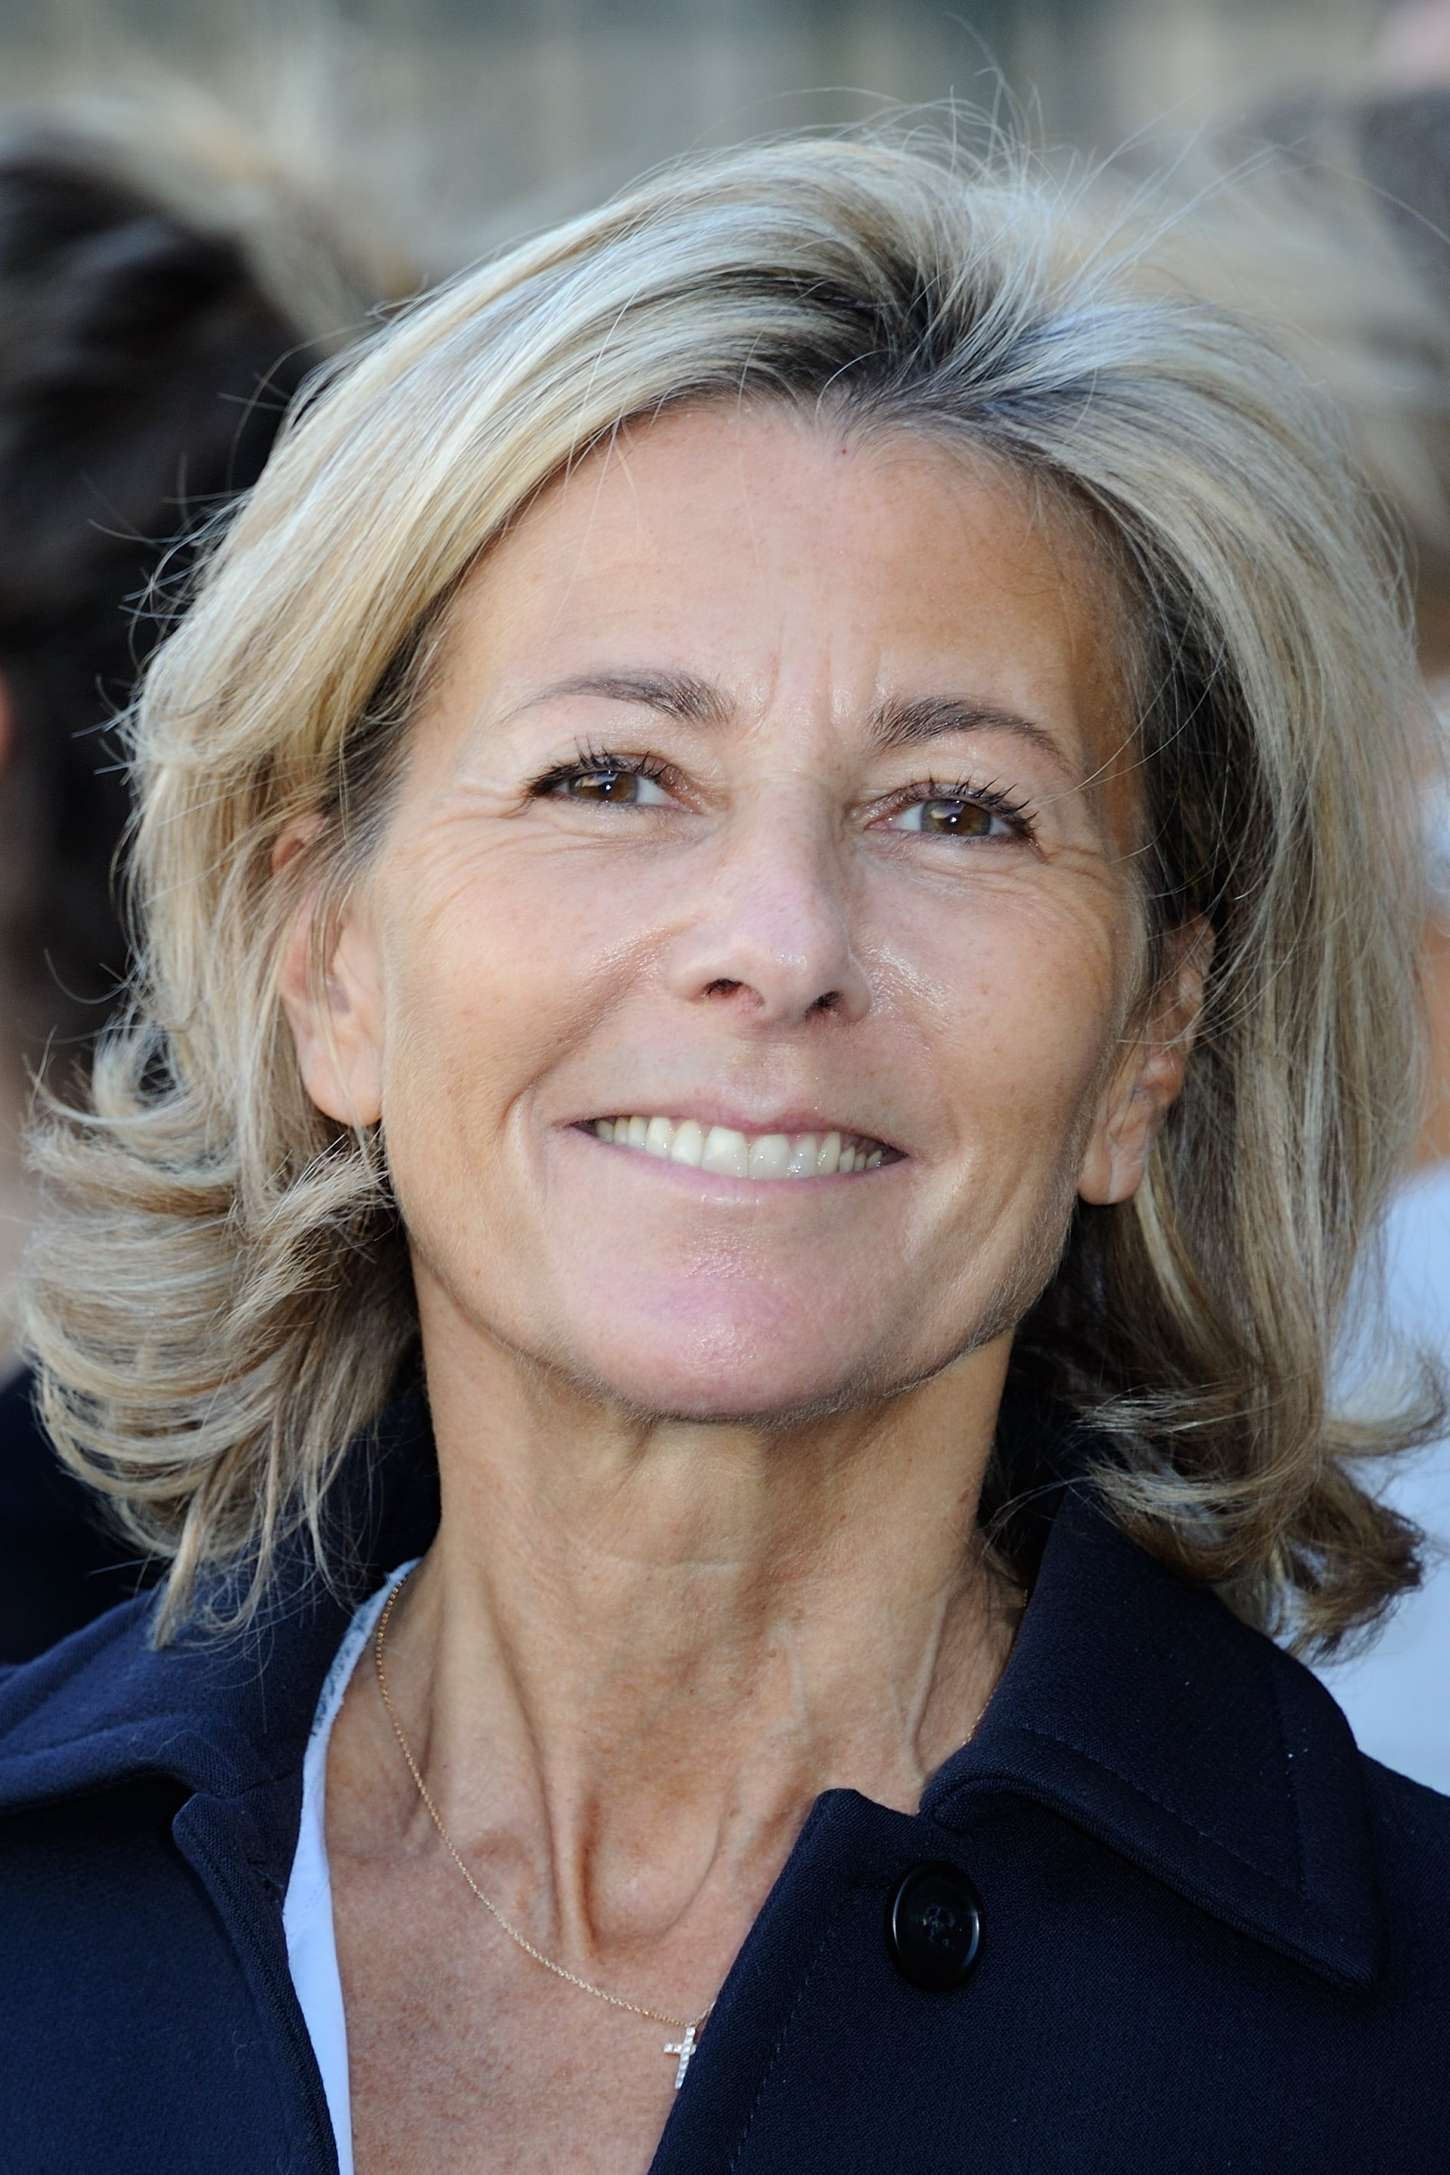 Snapchat Claire Chazal nude (94 photos), Ass, Cleavage, Boobs, underwear 2015